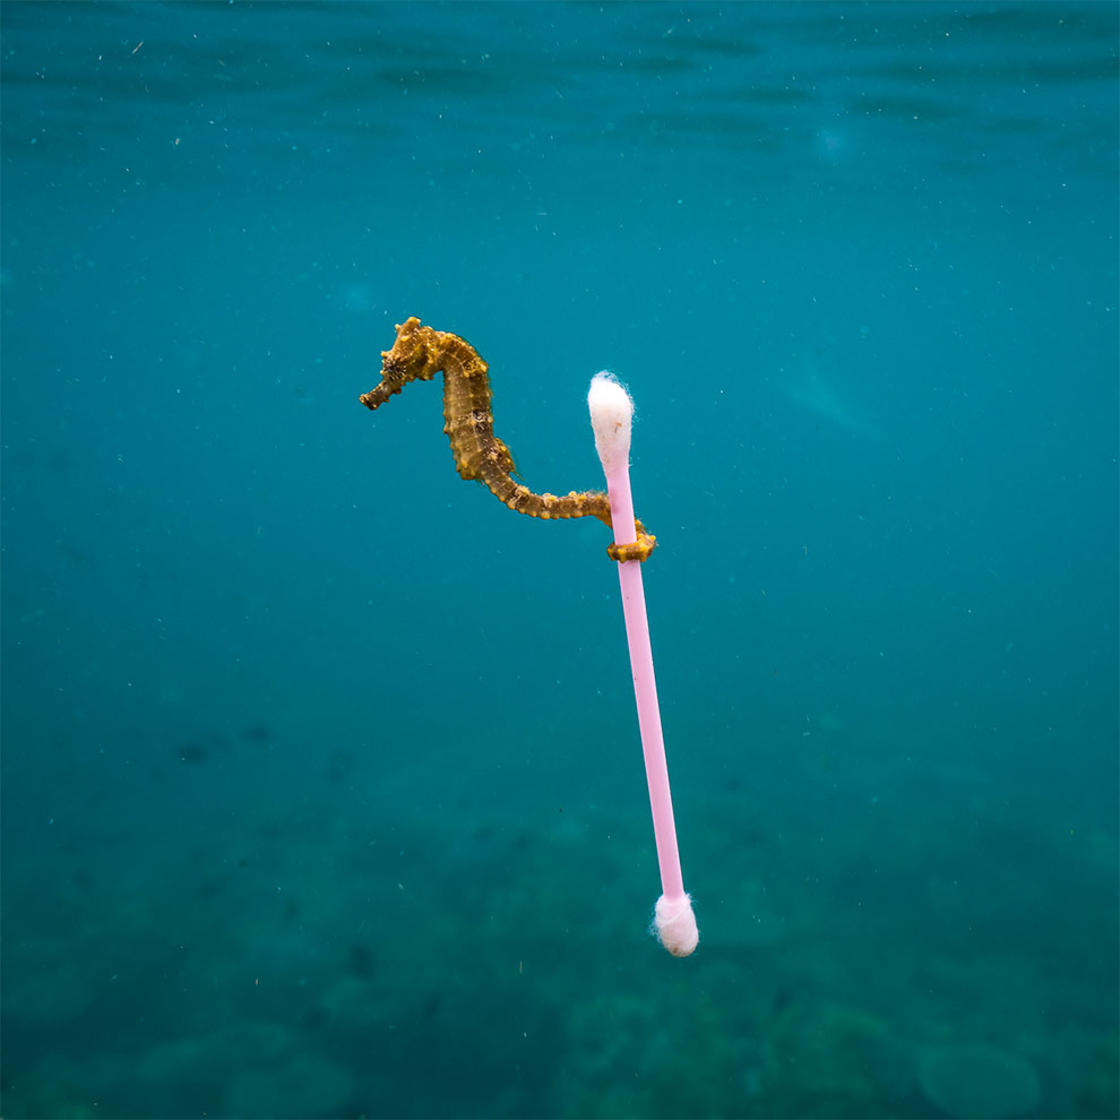 © Justin Hofman / Wildlife Photographer of the Year